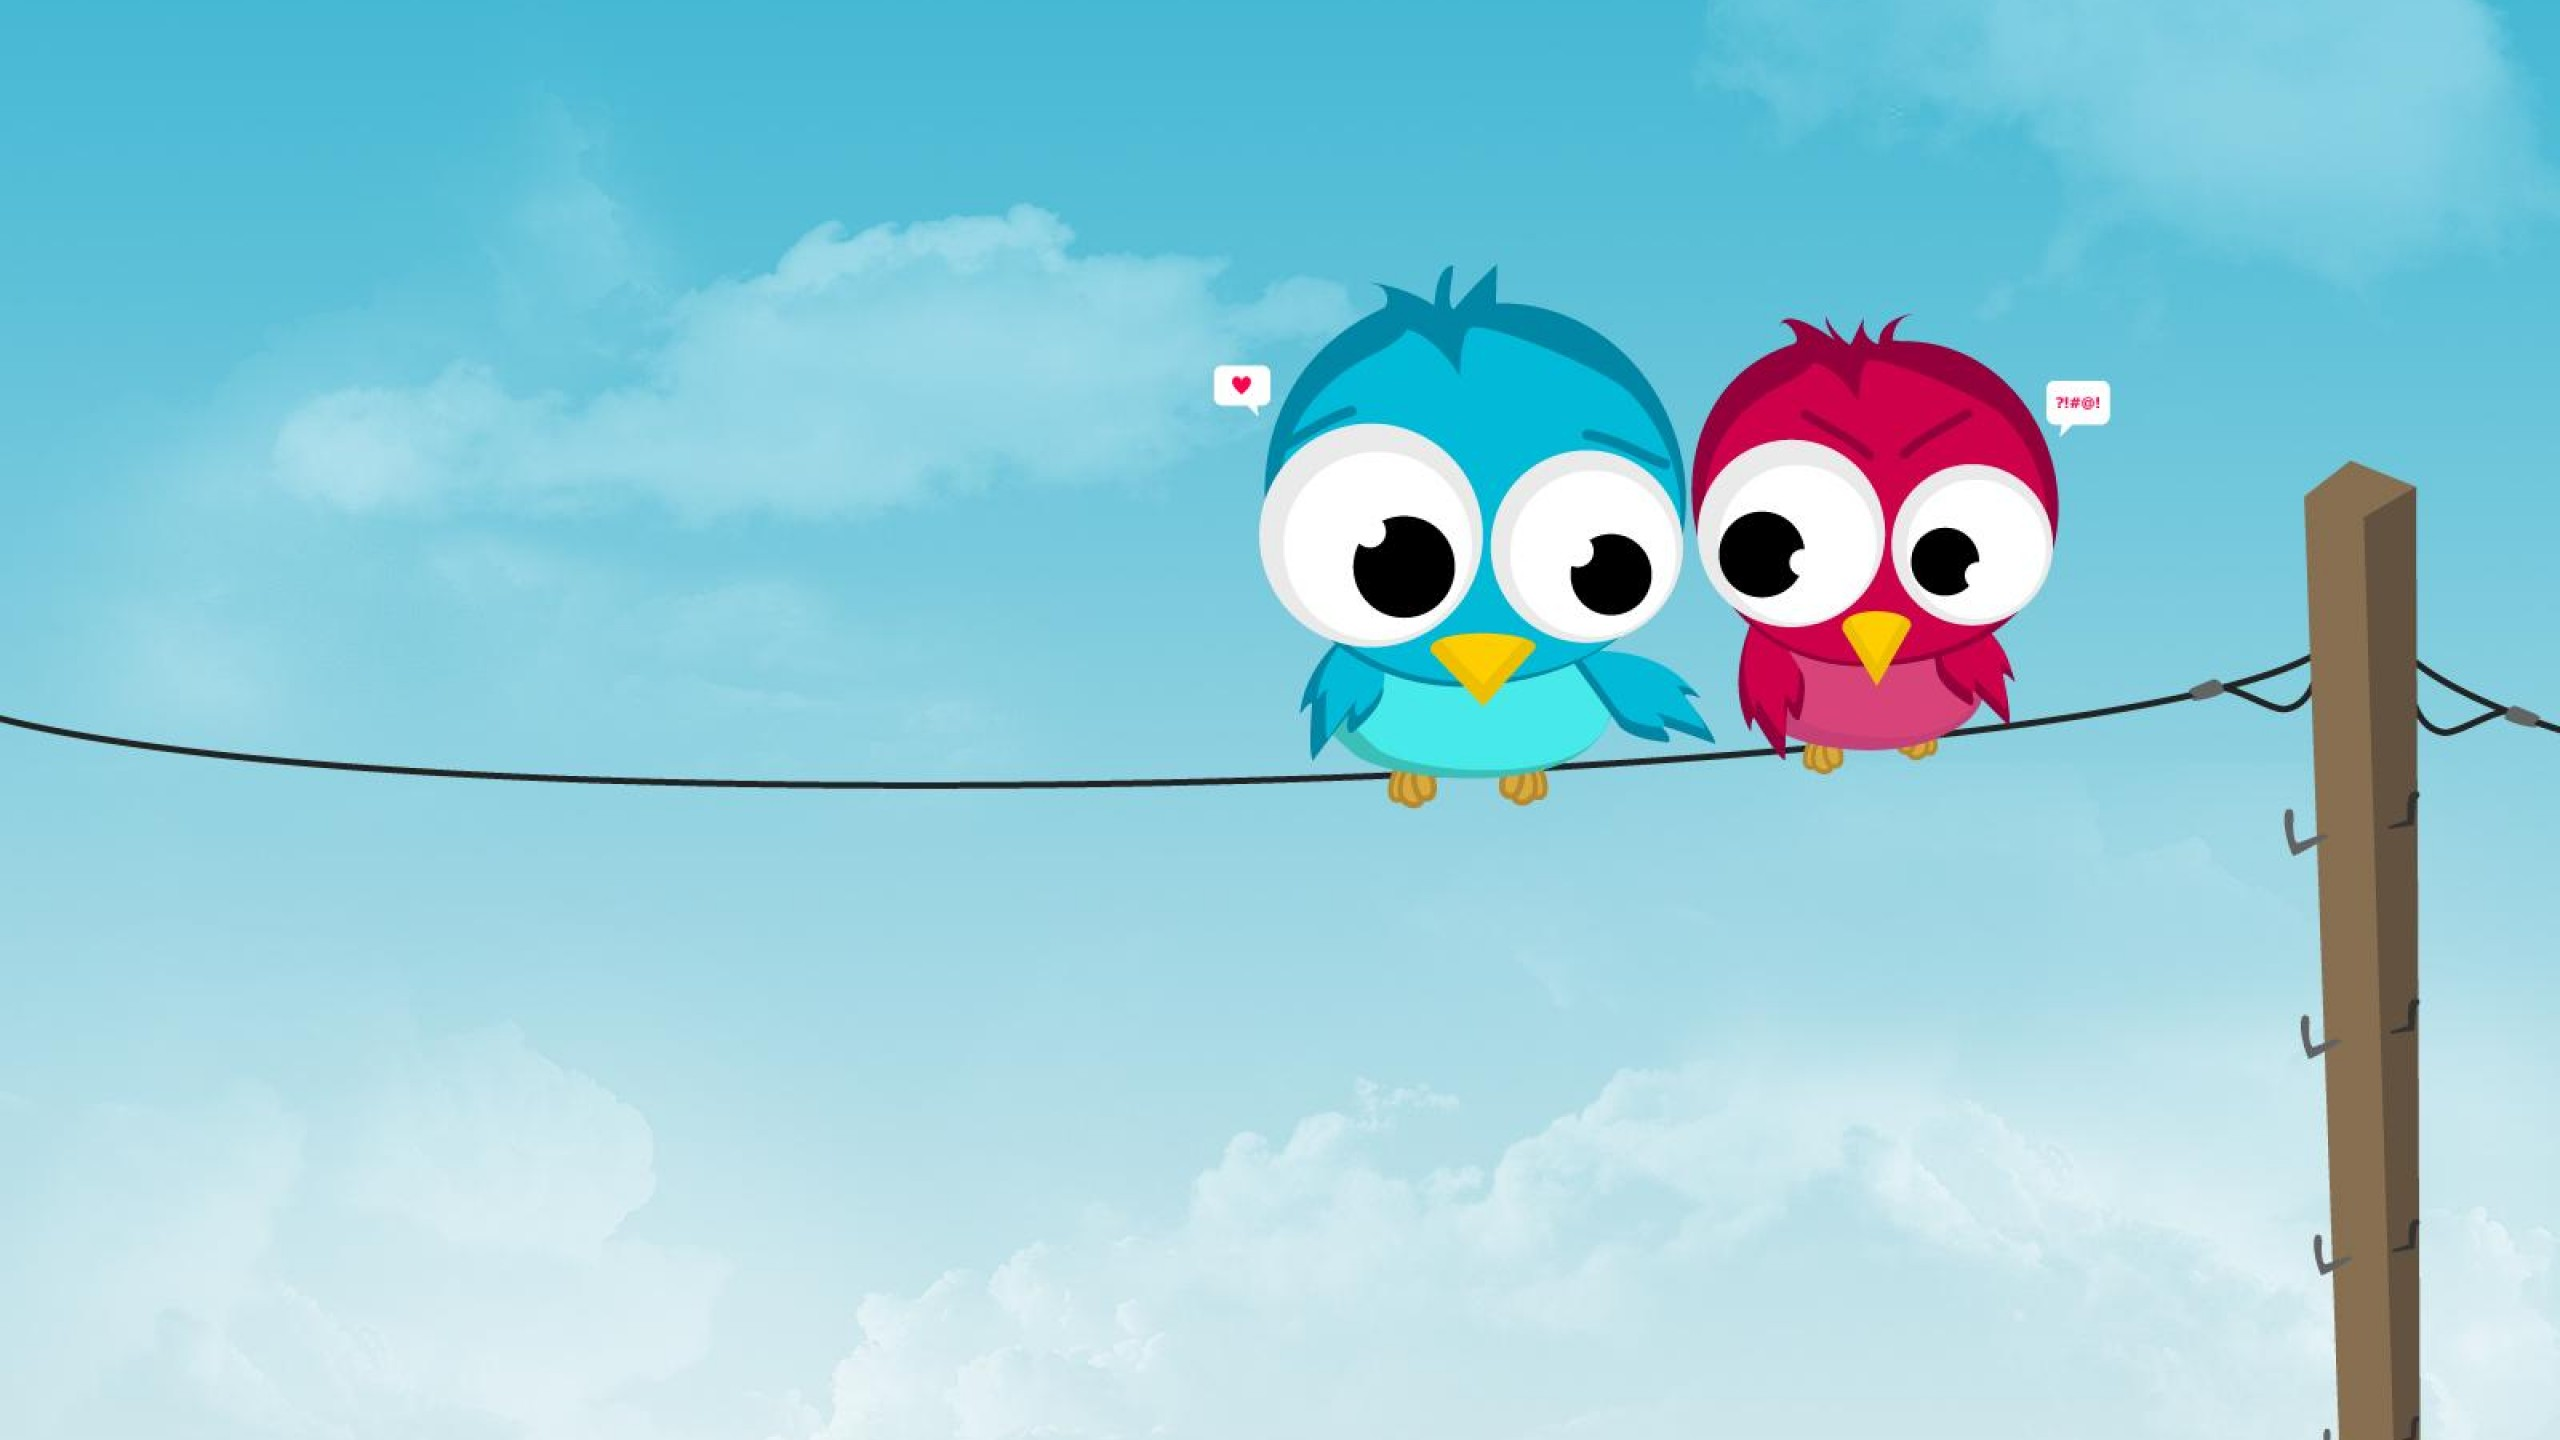 DOWNLOAD WALLPAPER Cute Iphone 5 - FULL SIZE ...